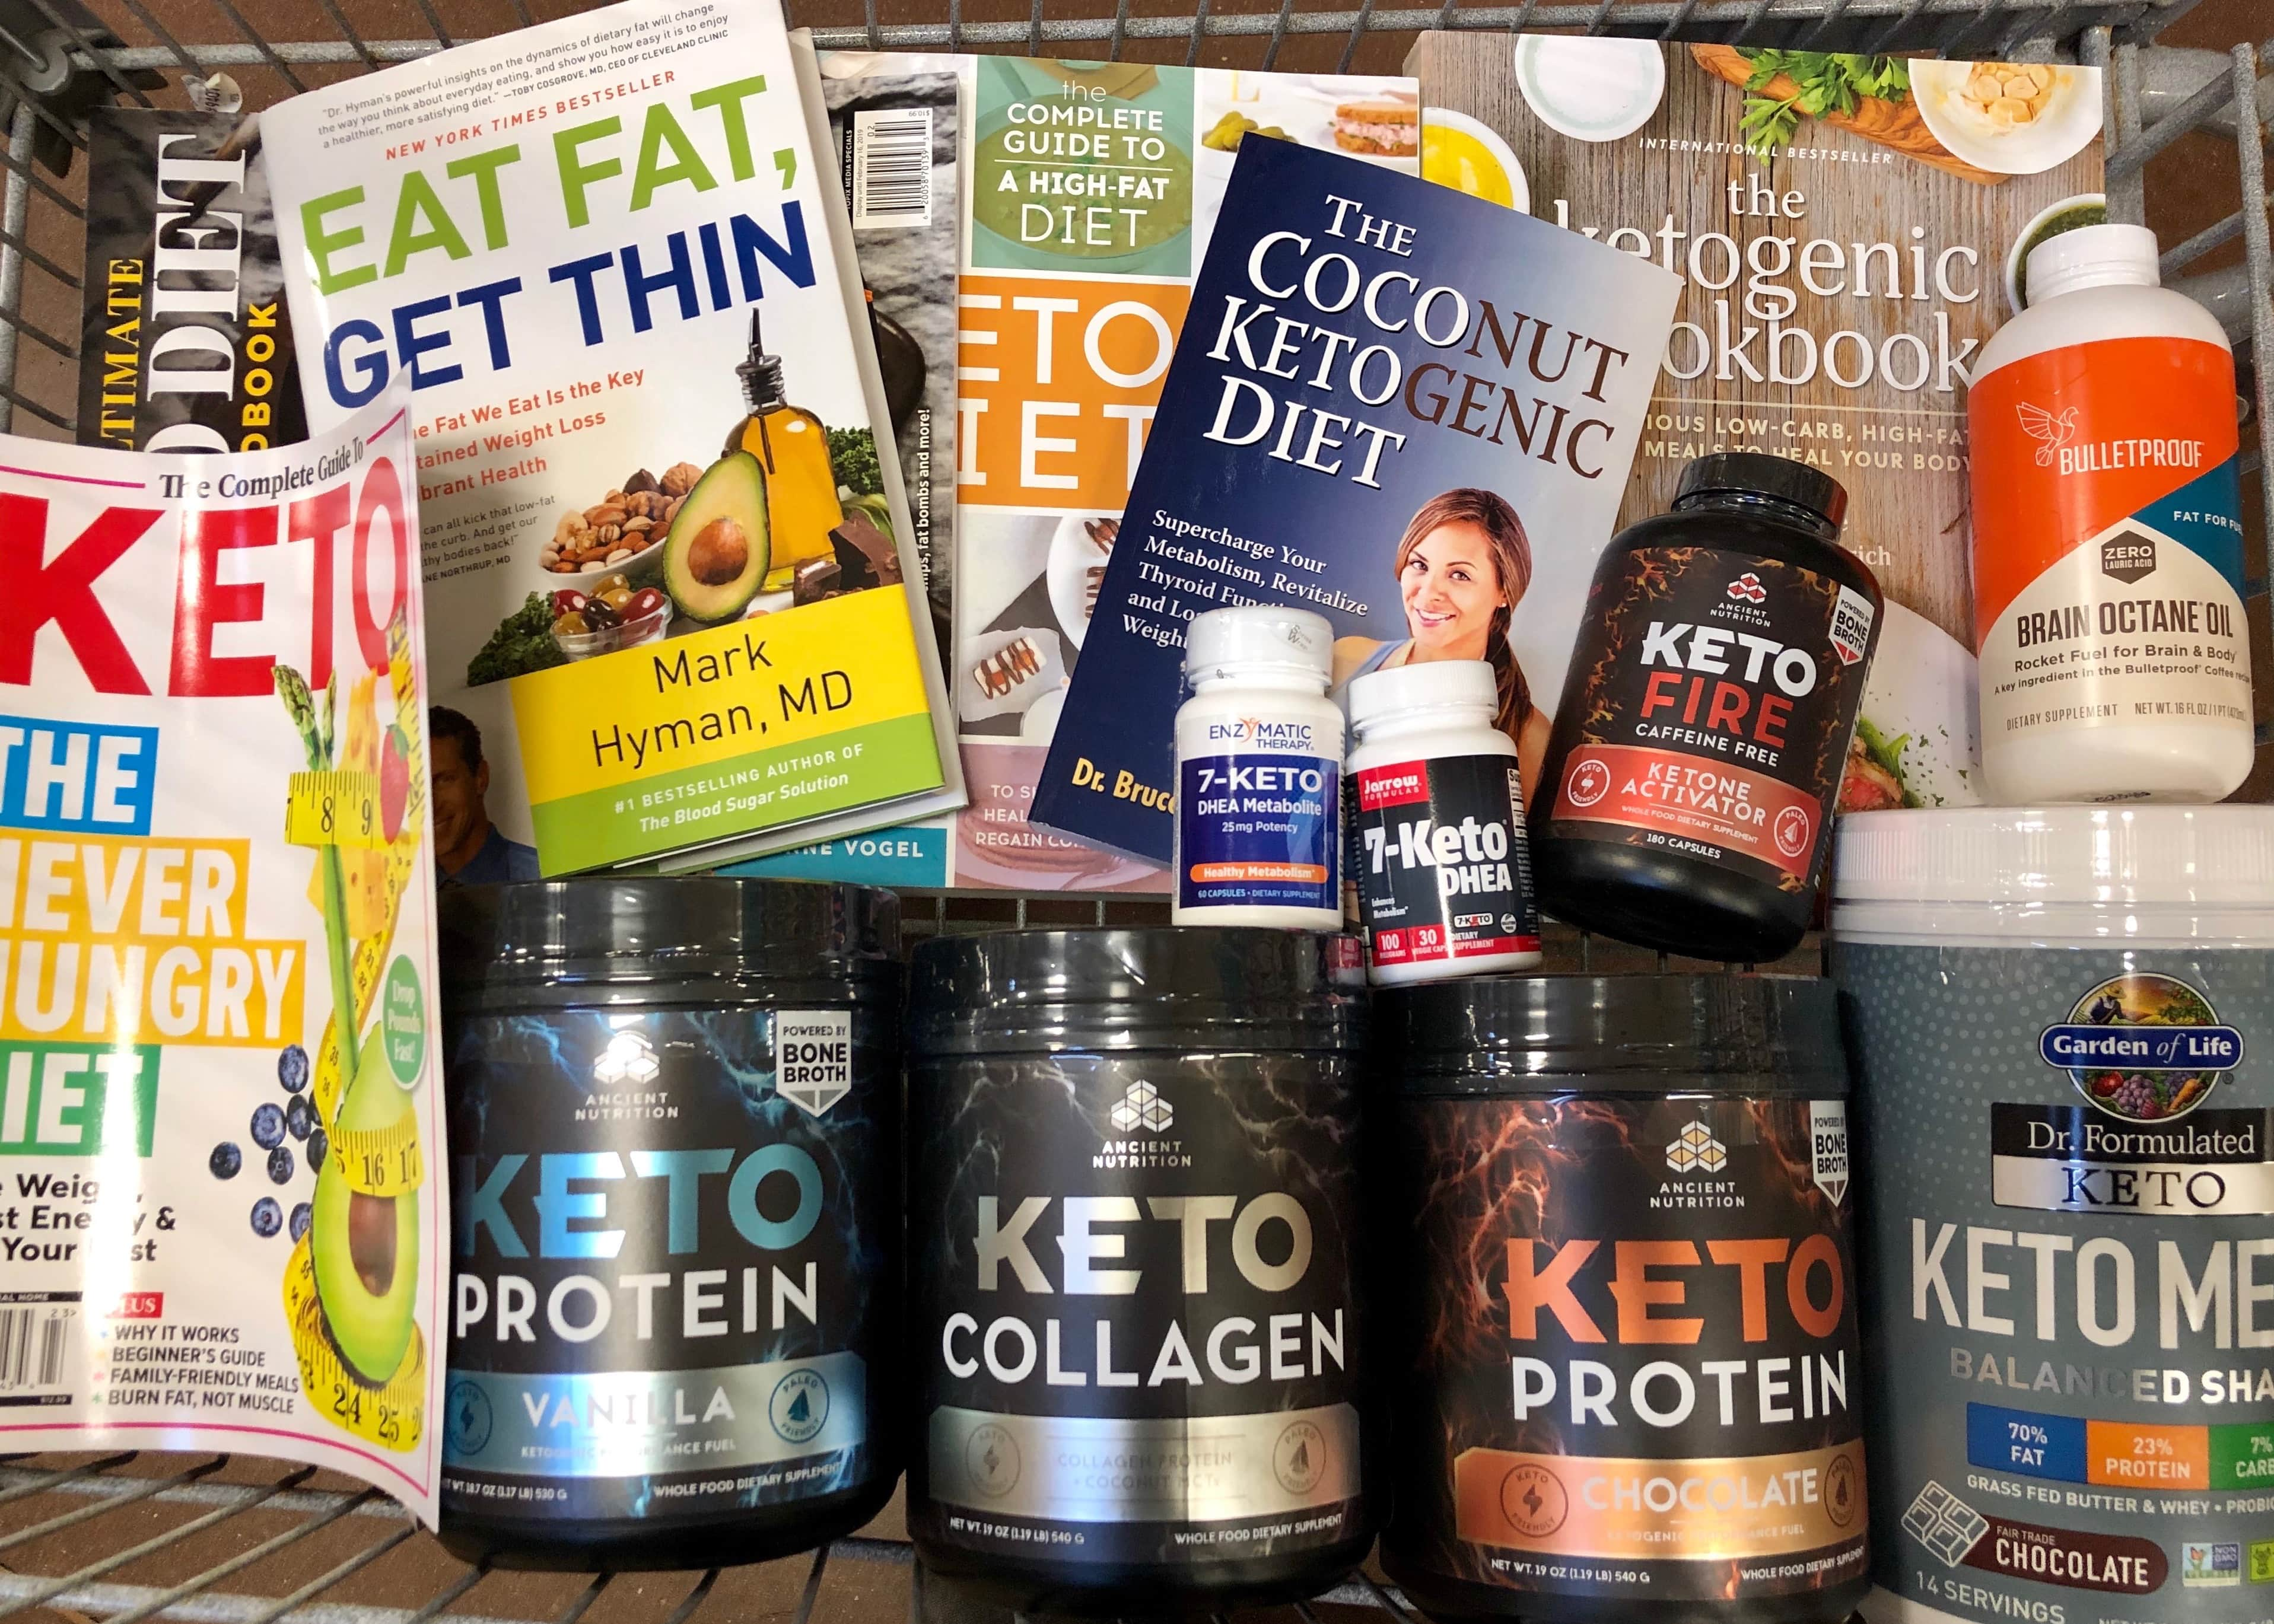 The Evidence Against The Ketogenic Diet For Cancer